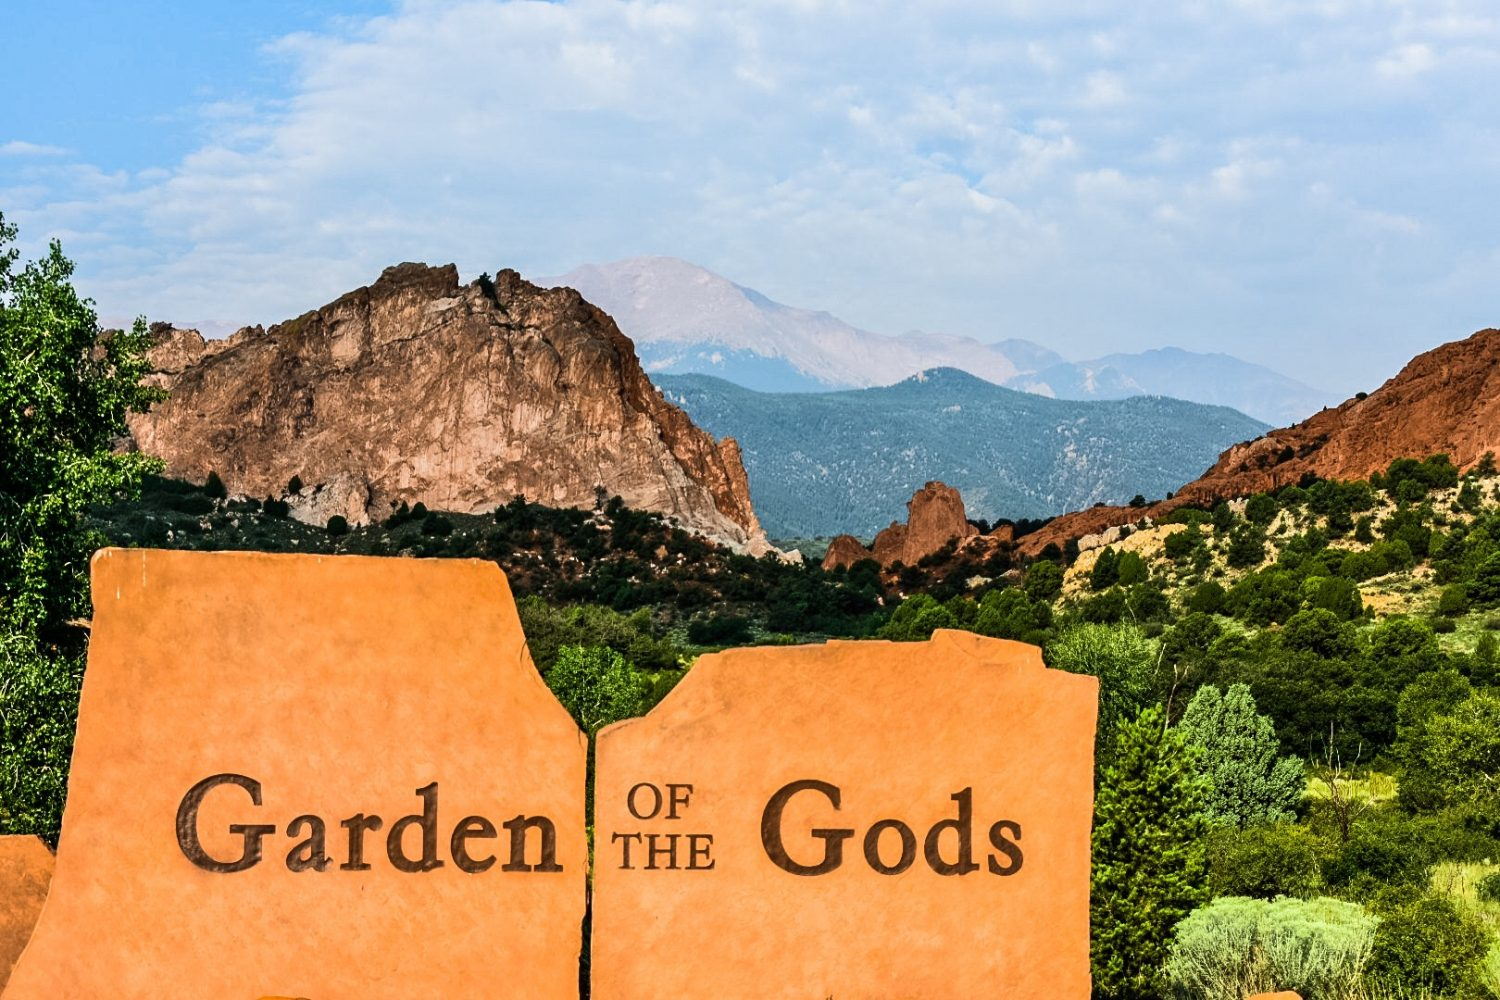 Picture of Garden of the Gods park in Colorado Springs, CO